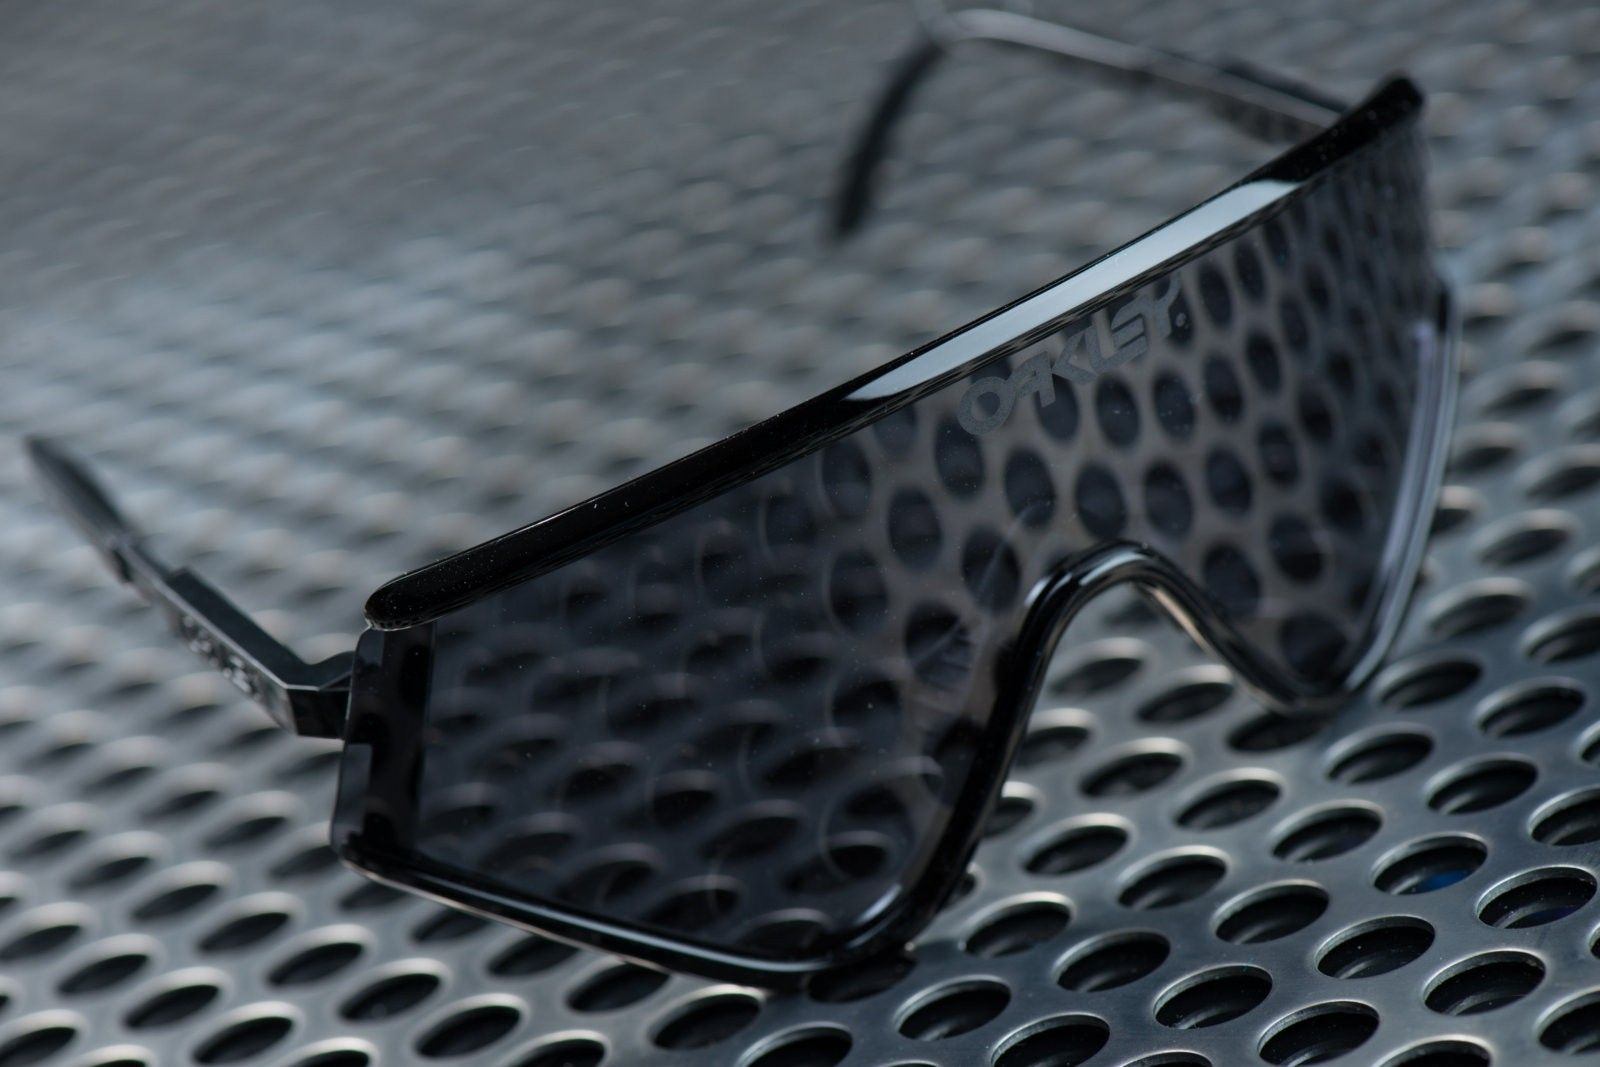 2 of 3 Signed Oakley Heritage Eyeshades by Jim Jannard - Black with Grey - Untitled Session00380.jpg